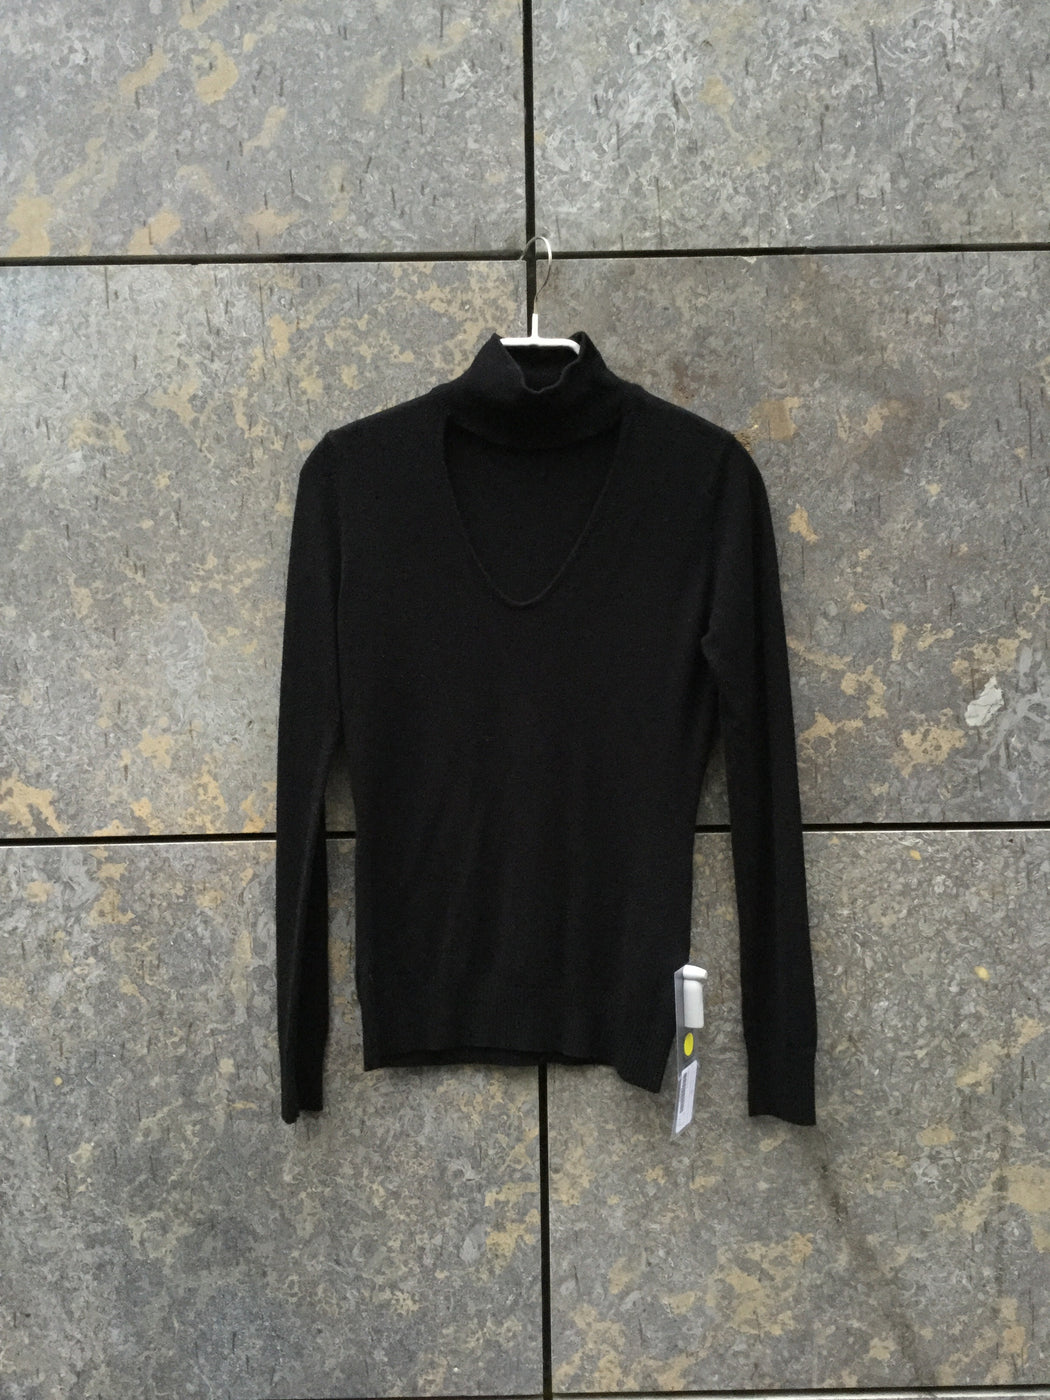 Black Wool / Acrylic Mix Contemporary Main Turtle Neck Cut Up Size XS/S